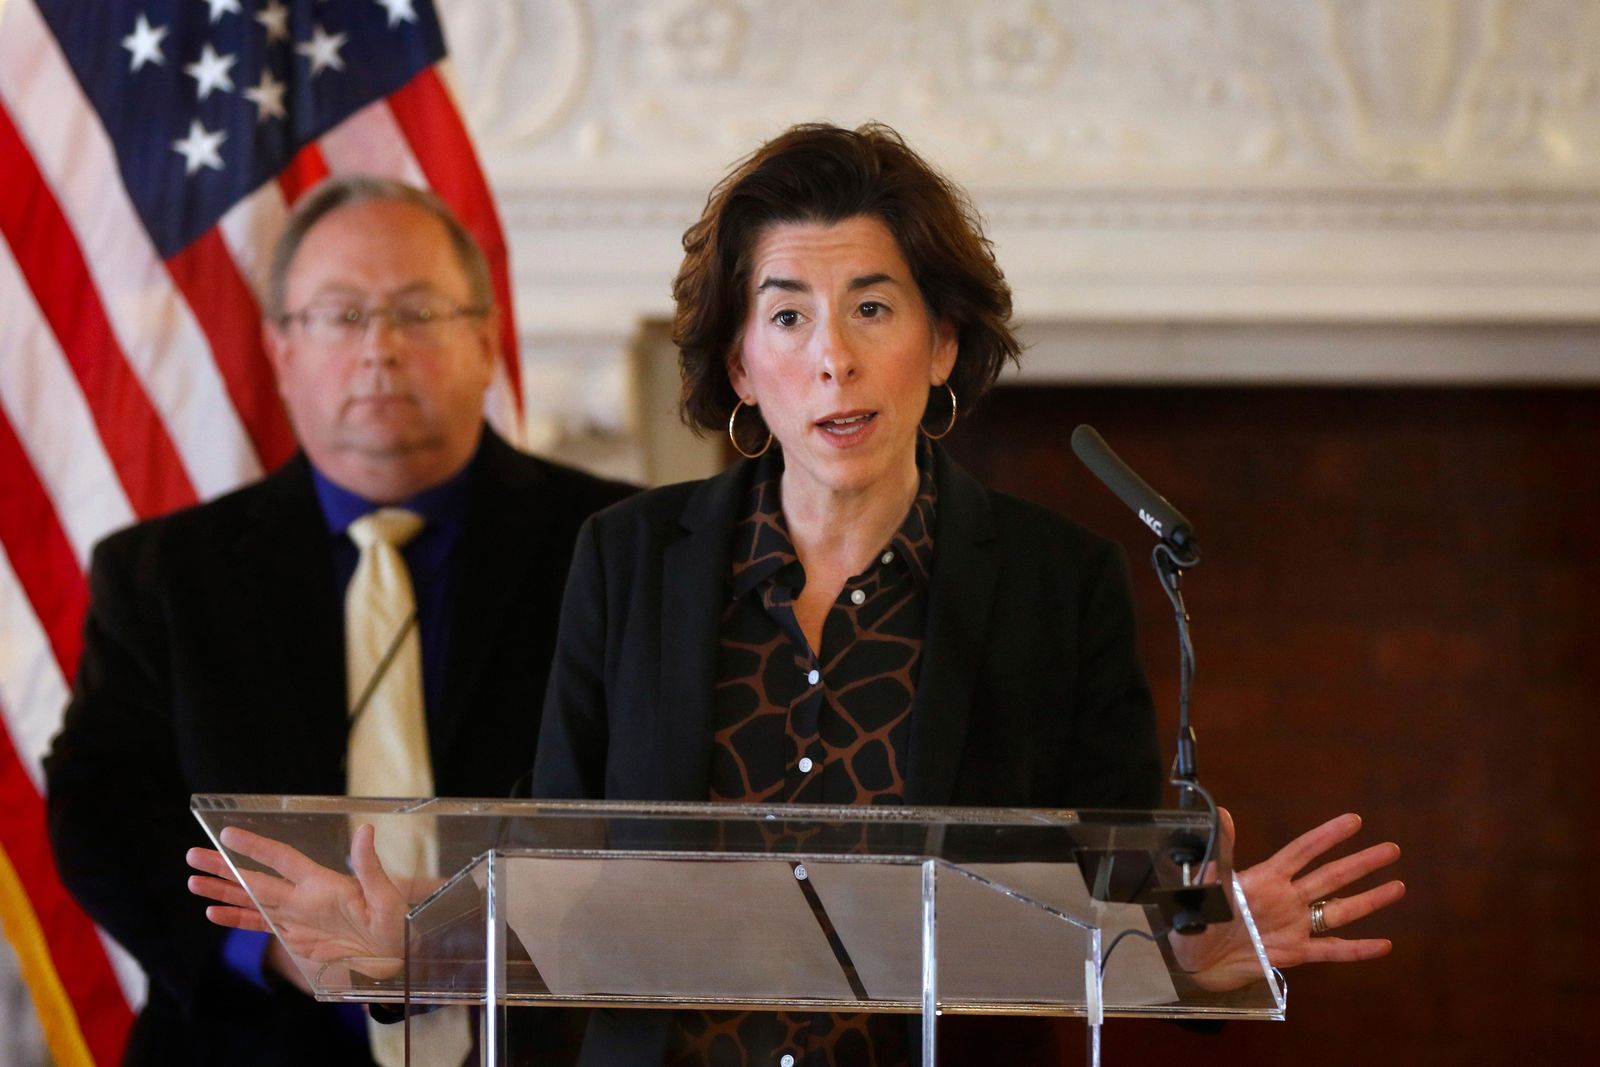 FILE - In this Sunday, March 22, 2020 file photo, Gov. Gina Raimondo gives an update on the coronavirus during a news conference in the State Room of the Rhode Island State House in Providence, R.I.{ } (Kris Craig/Providence Journal via AP, Pool)